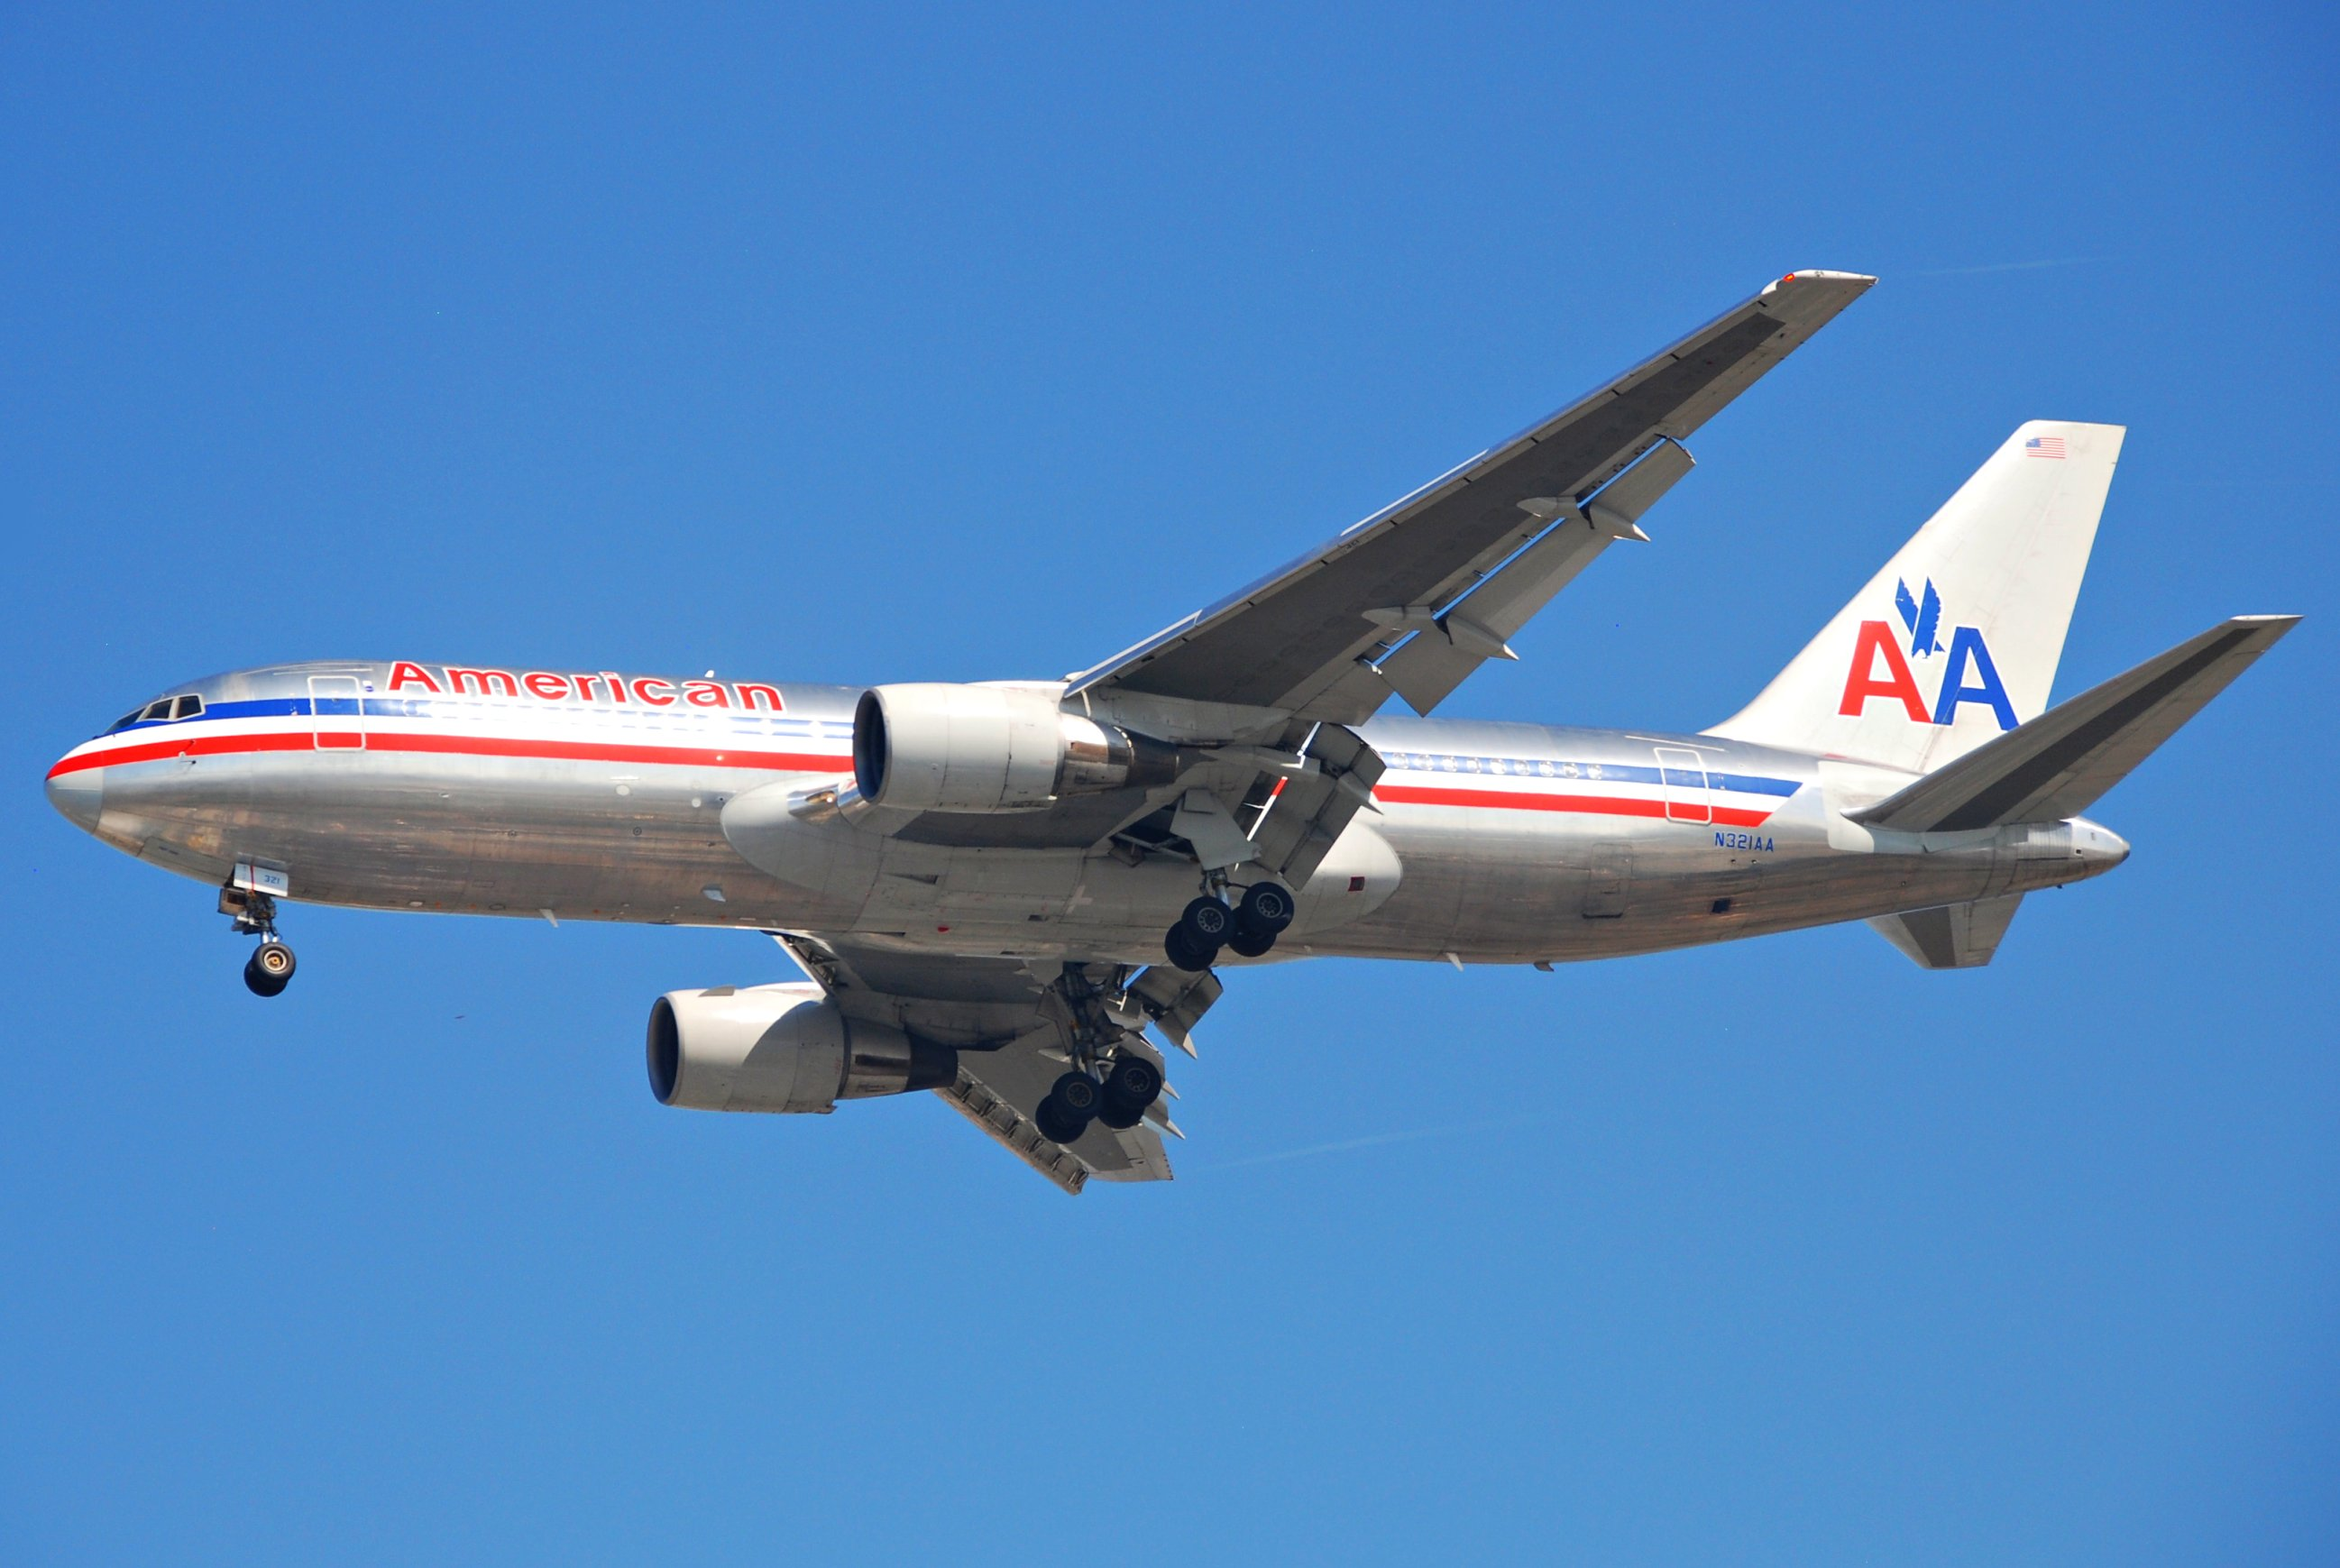 File:American Airlines Boeing 767-200; N321AA@LAX;11.10 ...